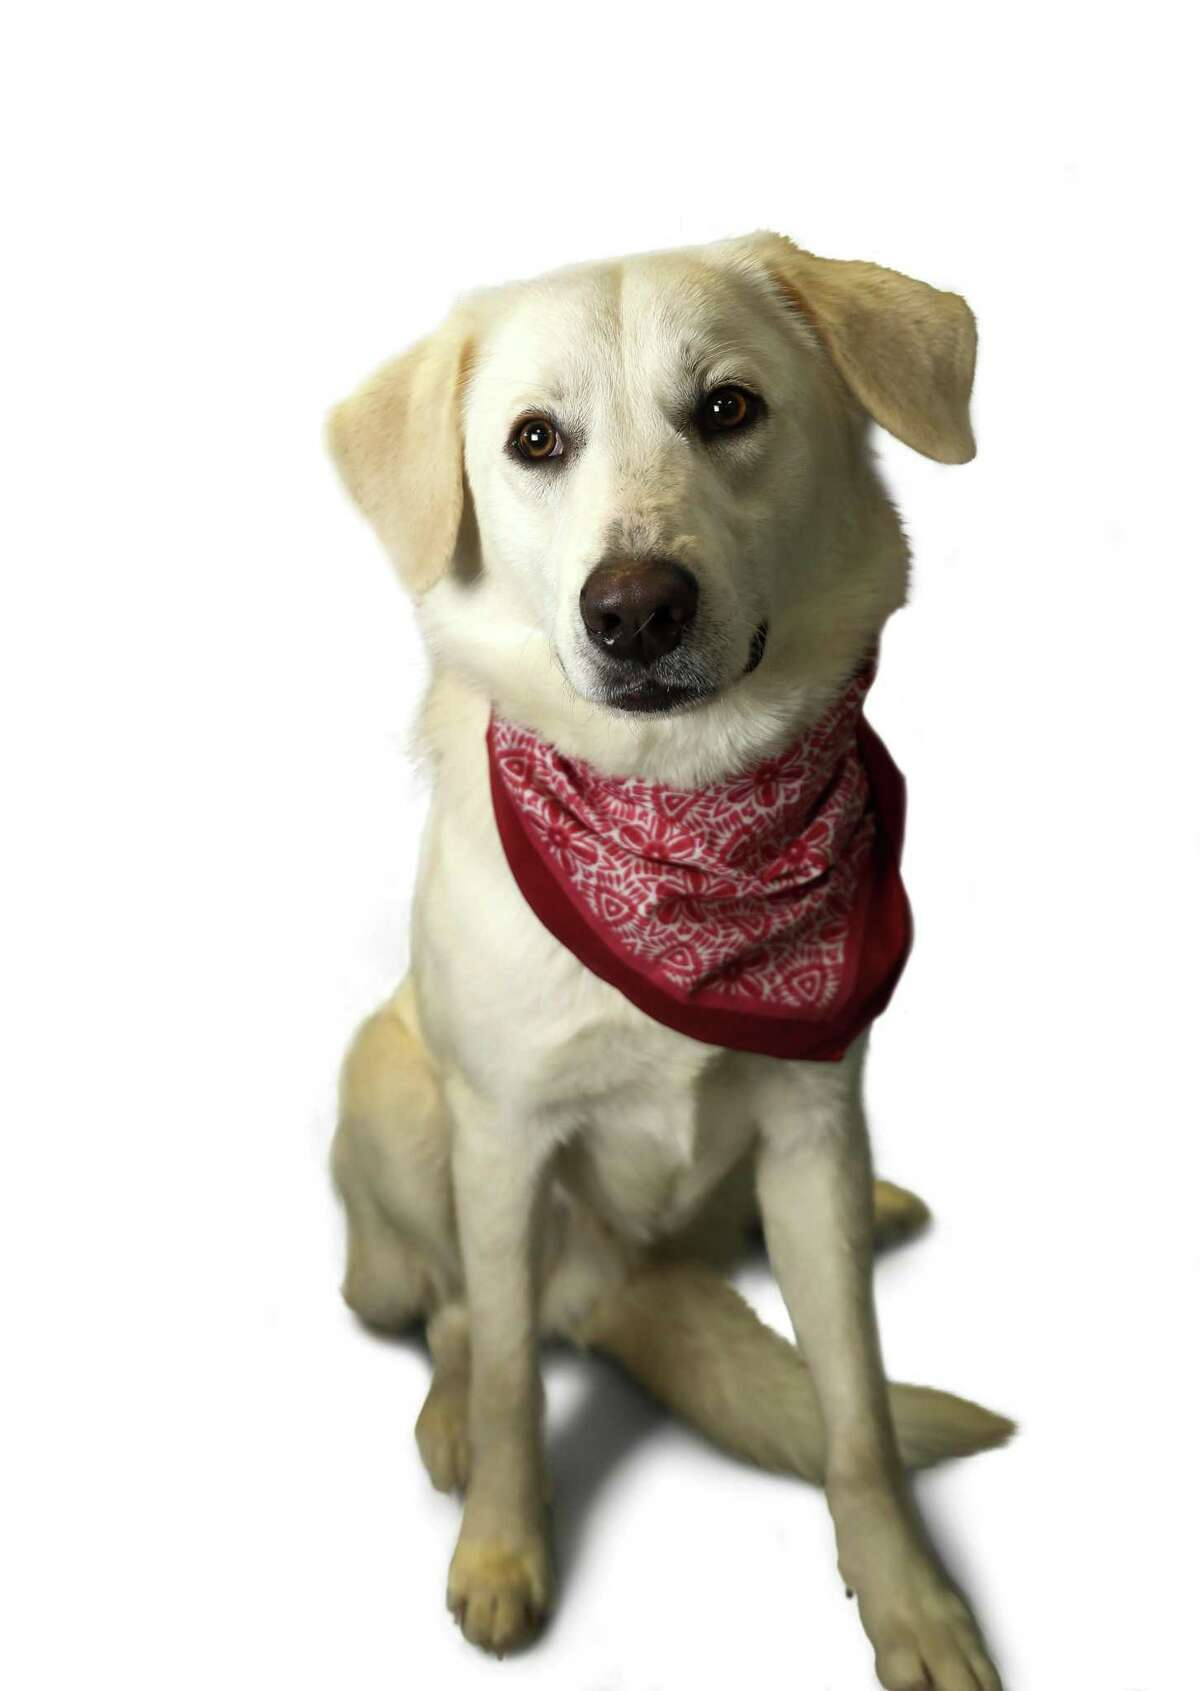 Romeo is a 1-year-old, male, Great Pyrenees mix and is ready to be adopted from Harris County Animal Shelter. (Animal ID: A526883) Photographed Tuesday, Feb. 12, 2019, in Houston.